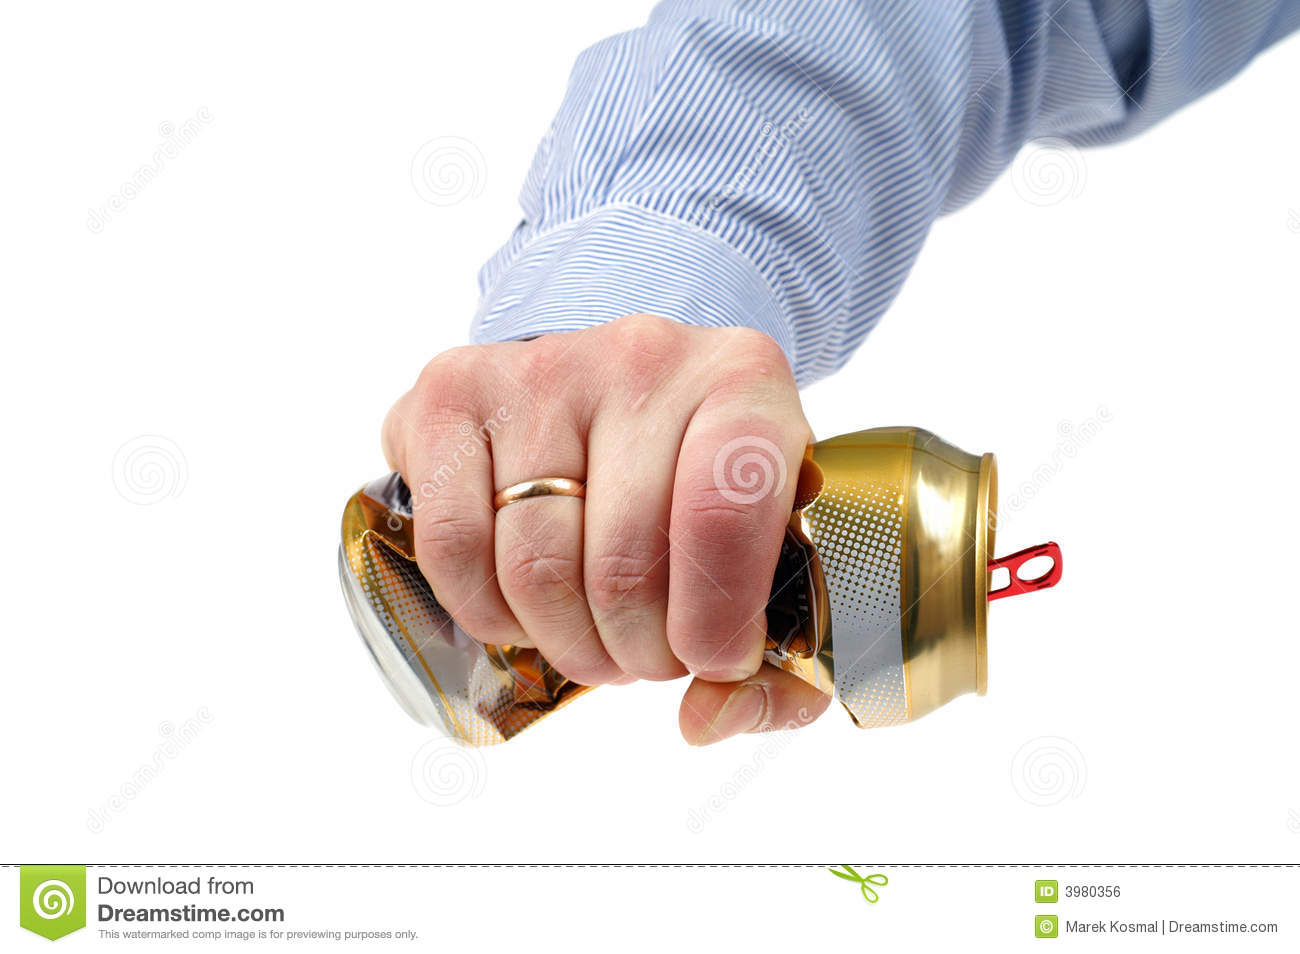 Crushed Beer-can Royalty Free Stock Image - Image: 3980356  Crushed Beer Can